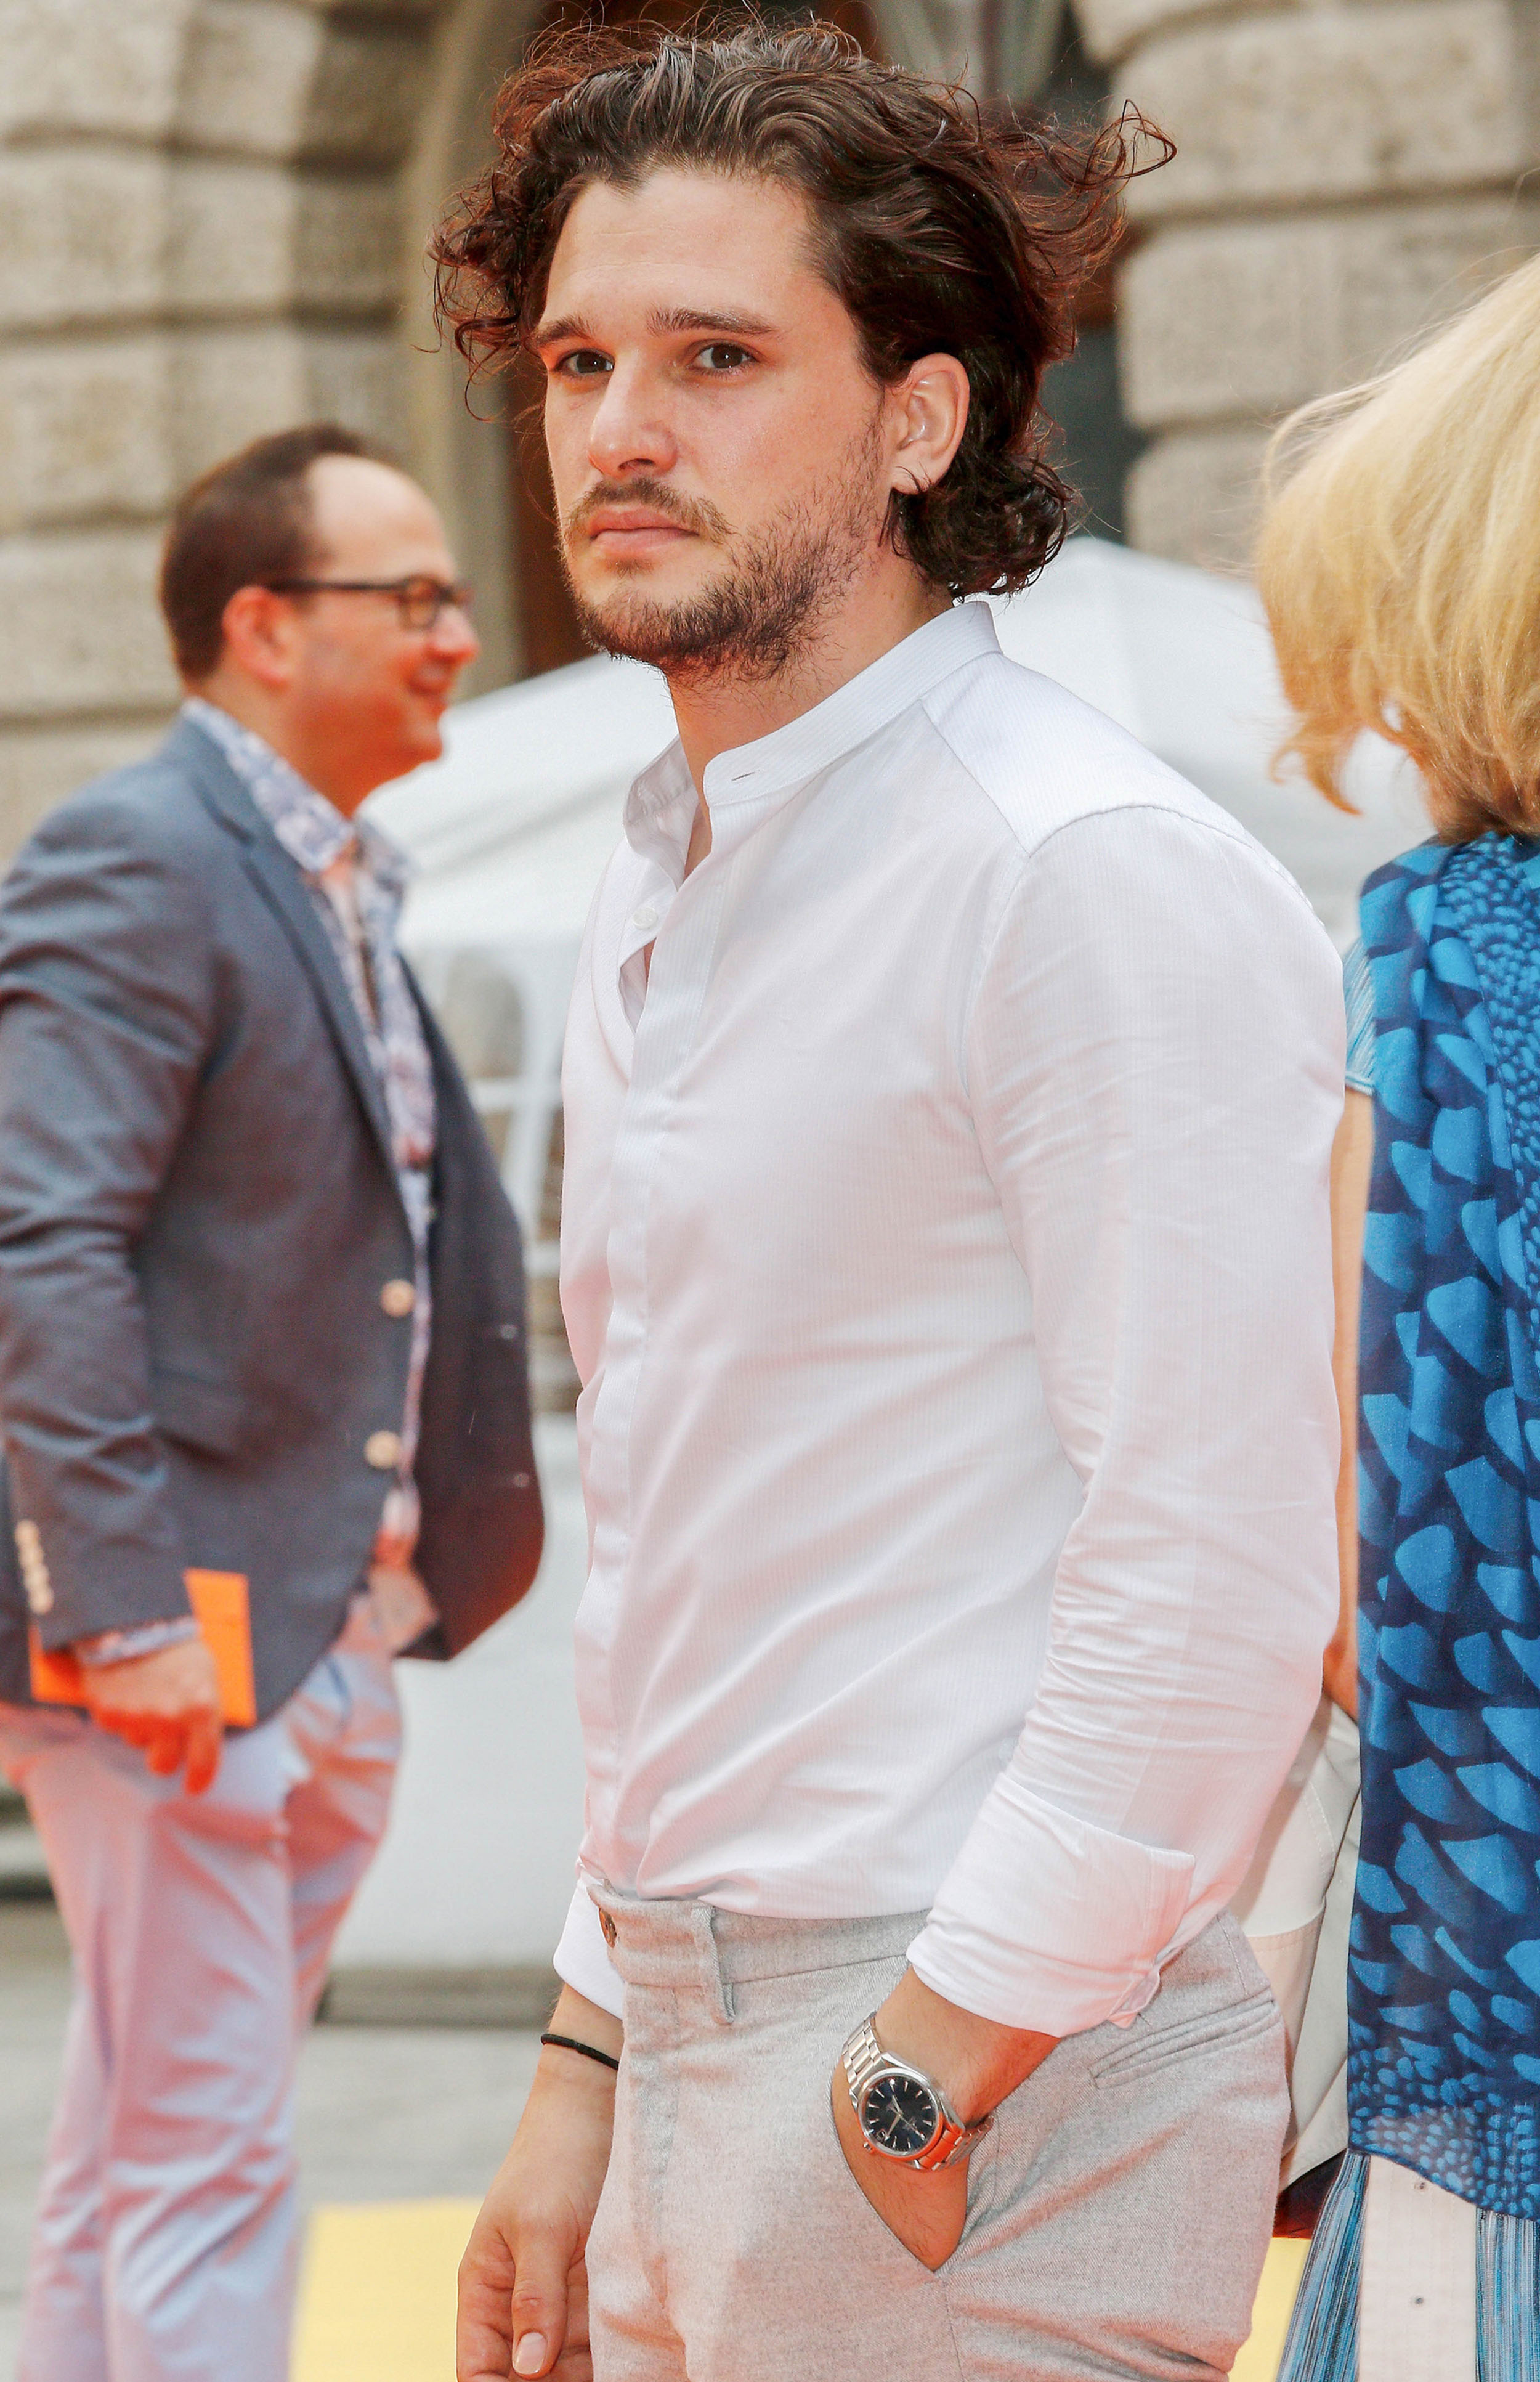 Game Of Thrones Ikea Teppich Kit Harington Trägt Ikea Teppich Loomee Tv